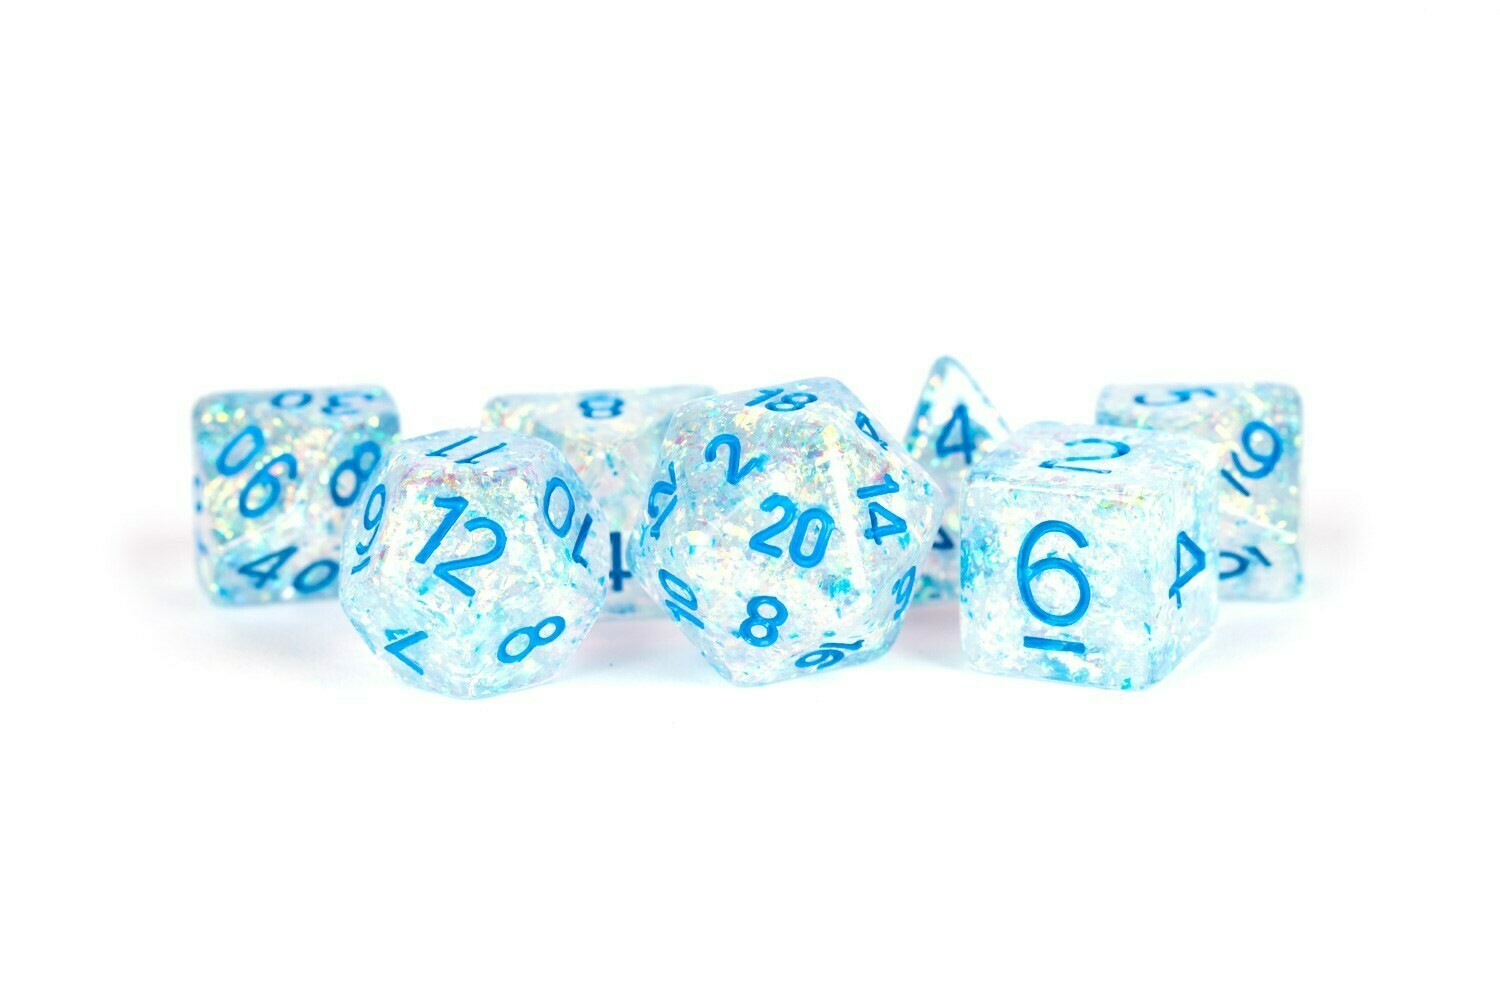 16mm Resin Flash Dice Poly Dice Set: Clear with Light Blue Numbers